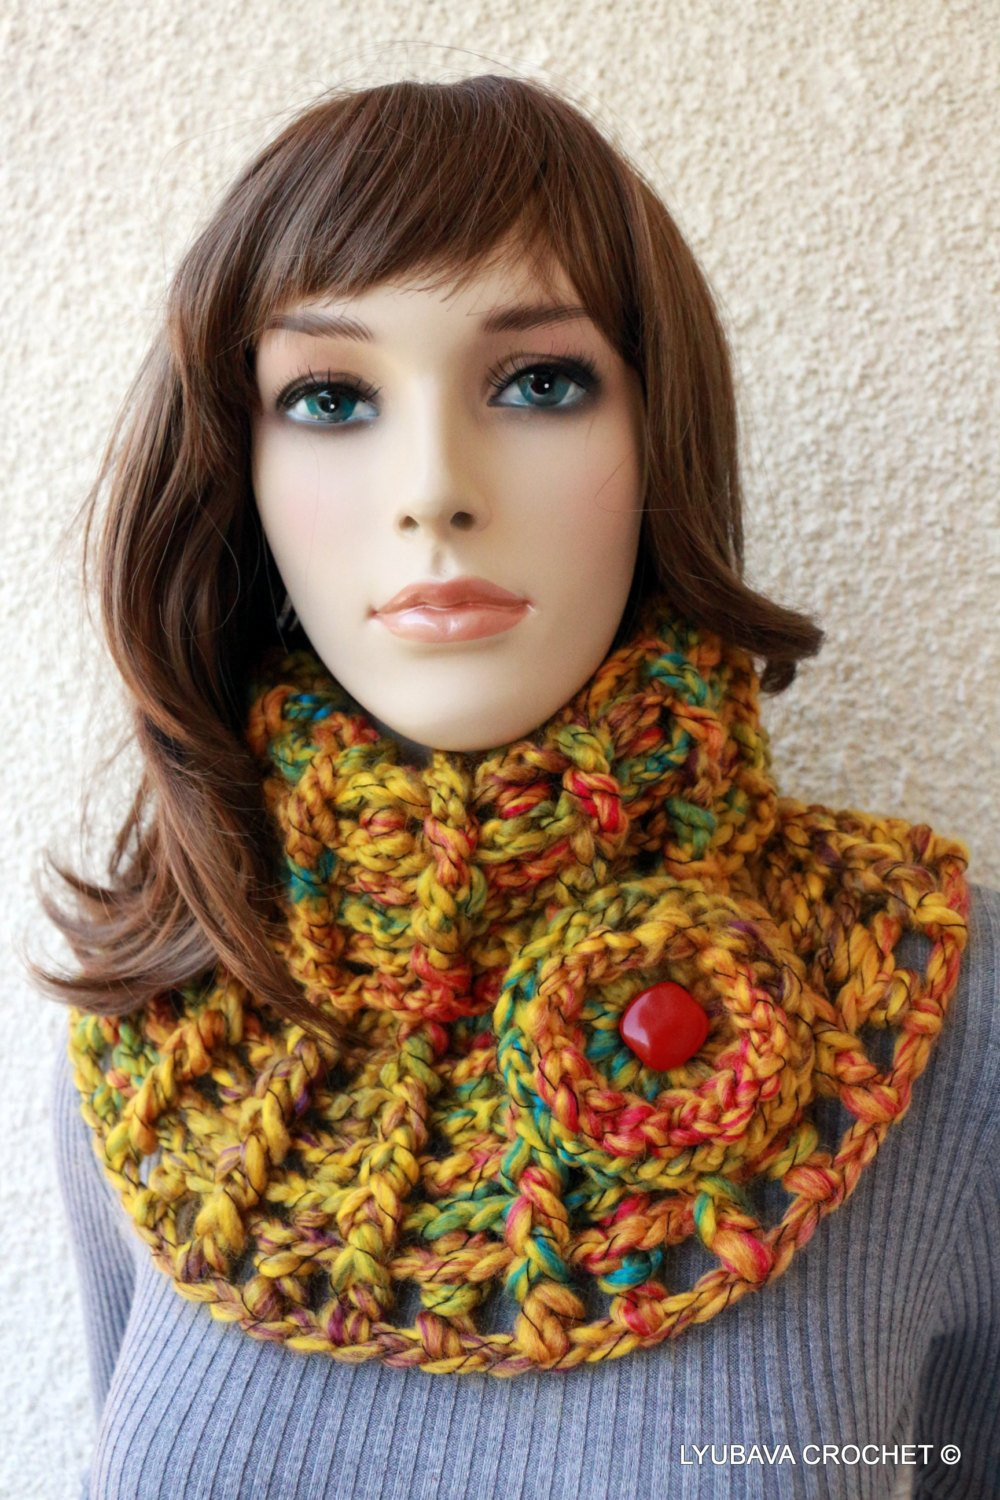 Awesome Crochet Neck Warmer Crochet Cowl Scarf by Crochetedbylyubava Crochet Cowl Neck Scarf Of Superb 49 Models Crochet Cowl Neck Scarf